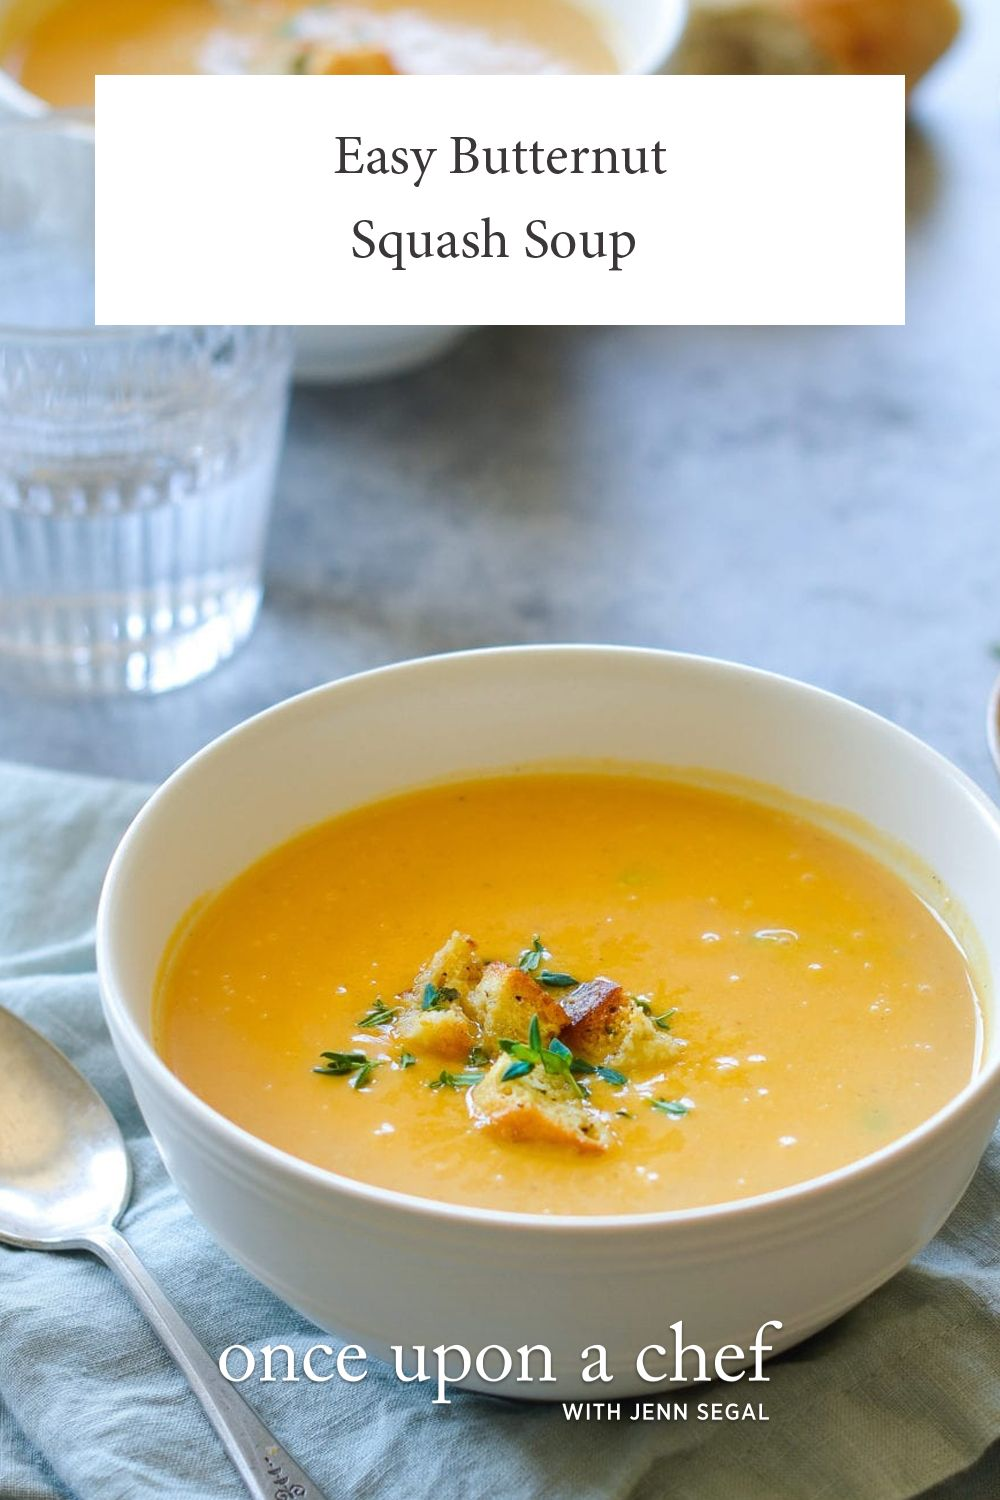 Easy Butternut Squash Soup - Once Upon a Chef